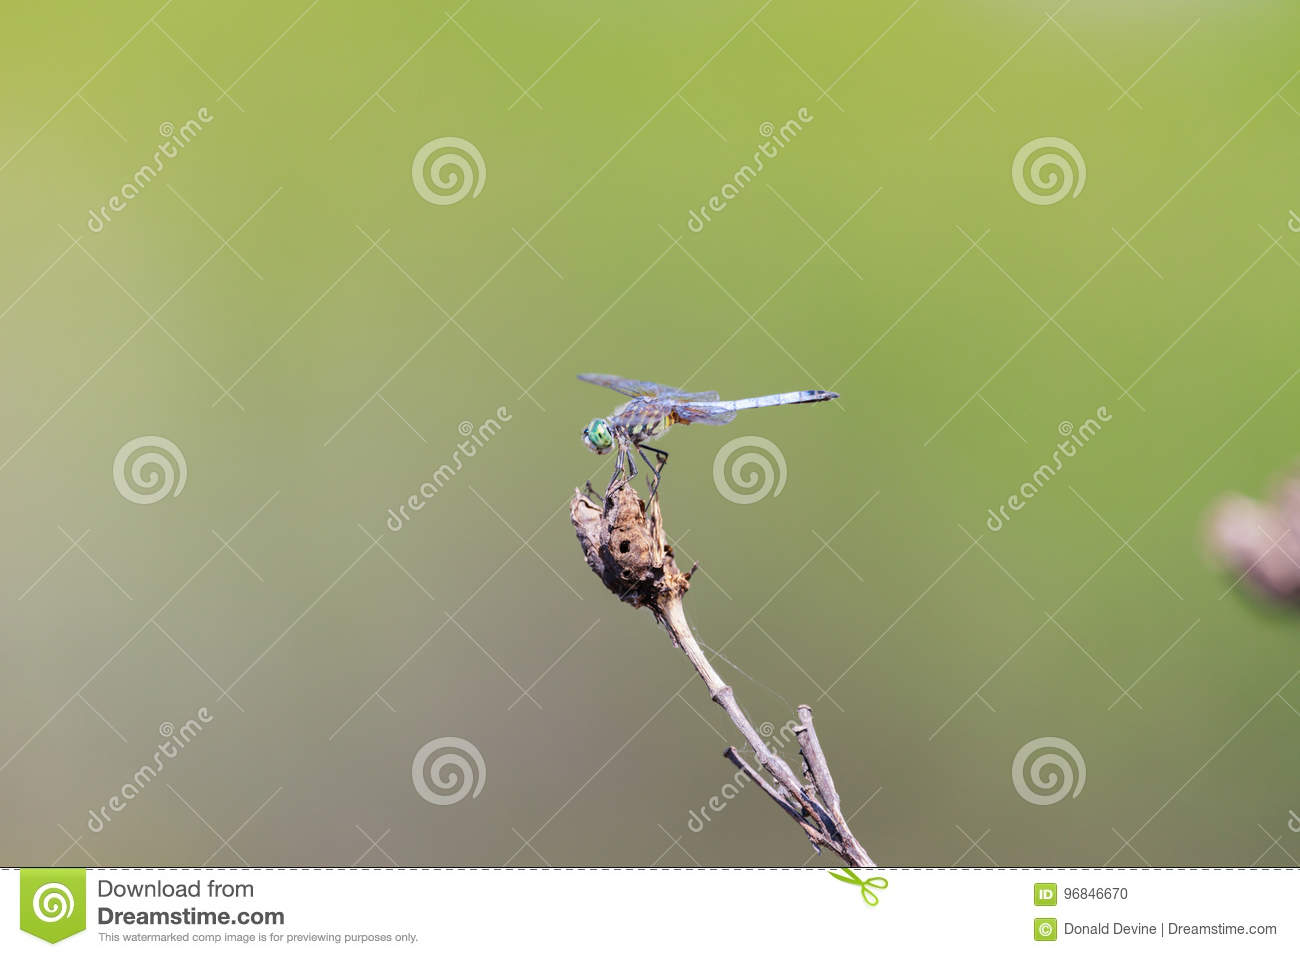 Emerald dragonfly perched on a twig at the Bald Knob National Wildlife Refuge in Bald Knob